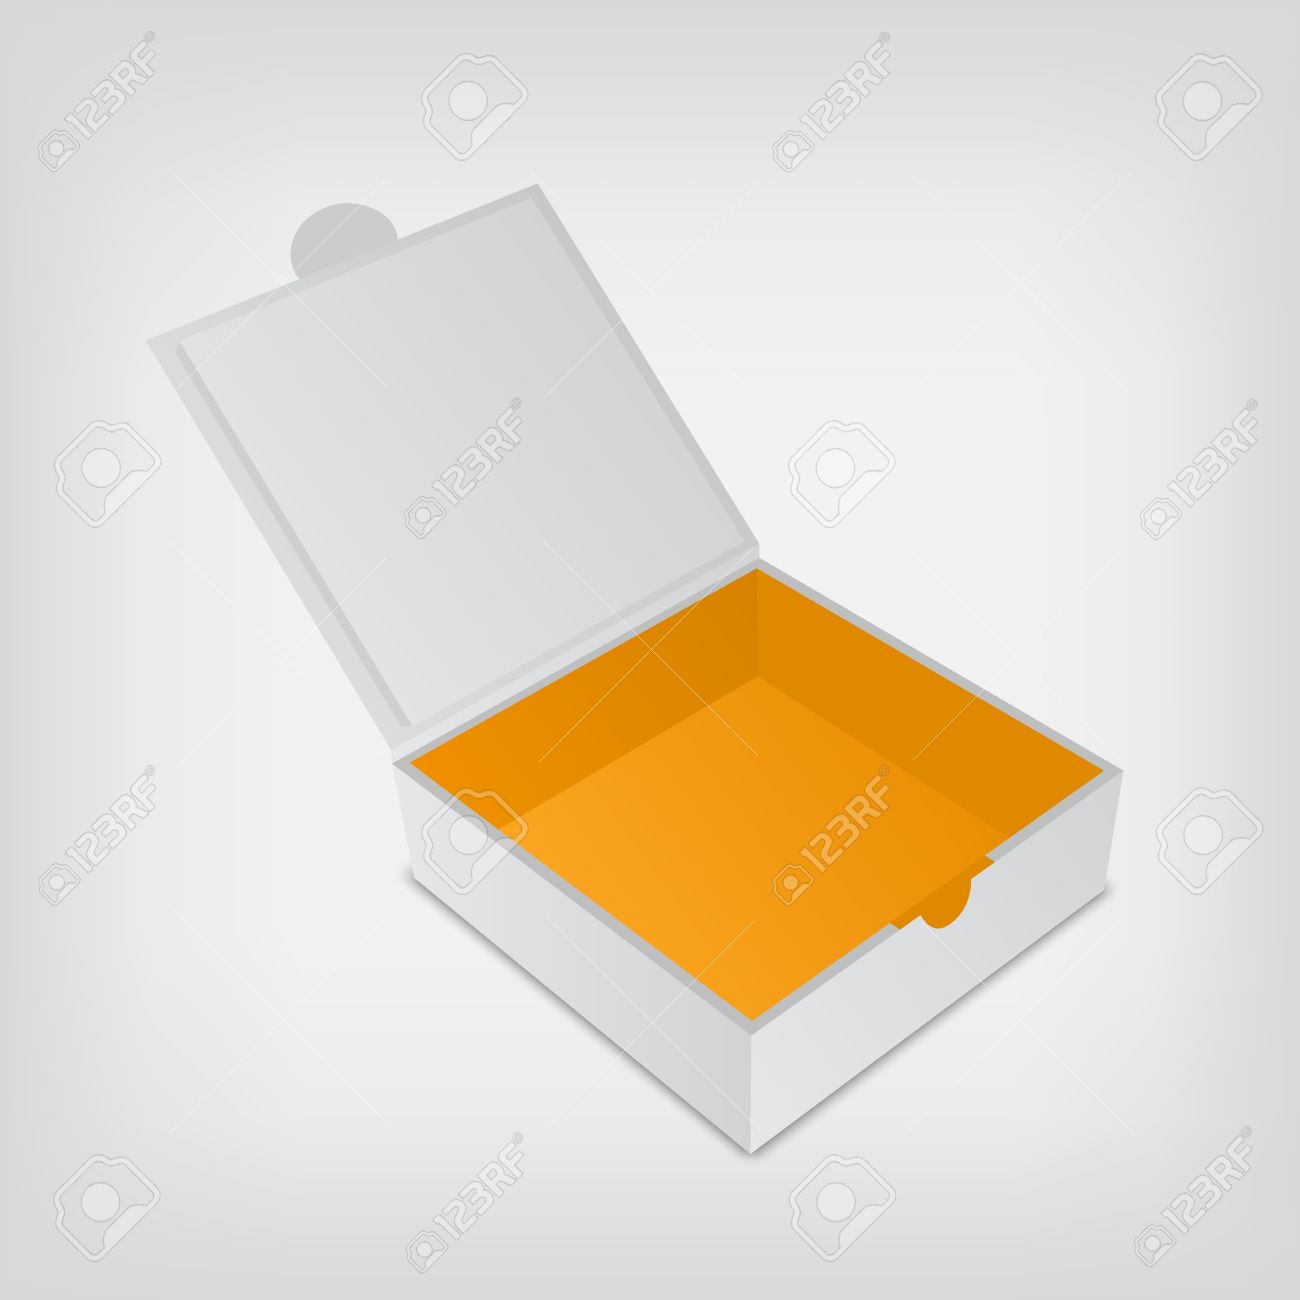 open packaging design box mockup gray square shape and orange